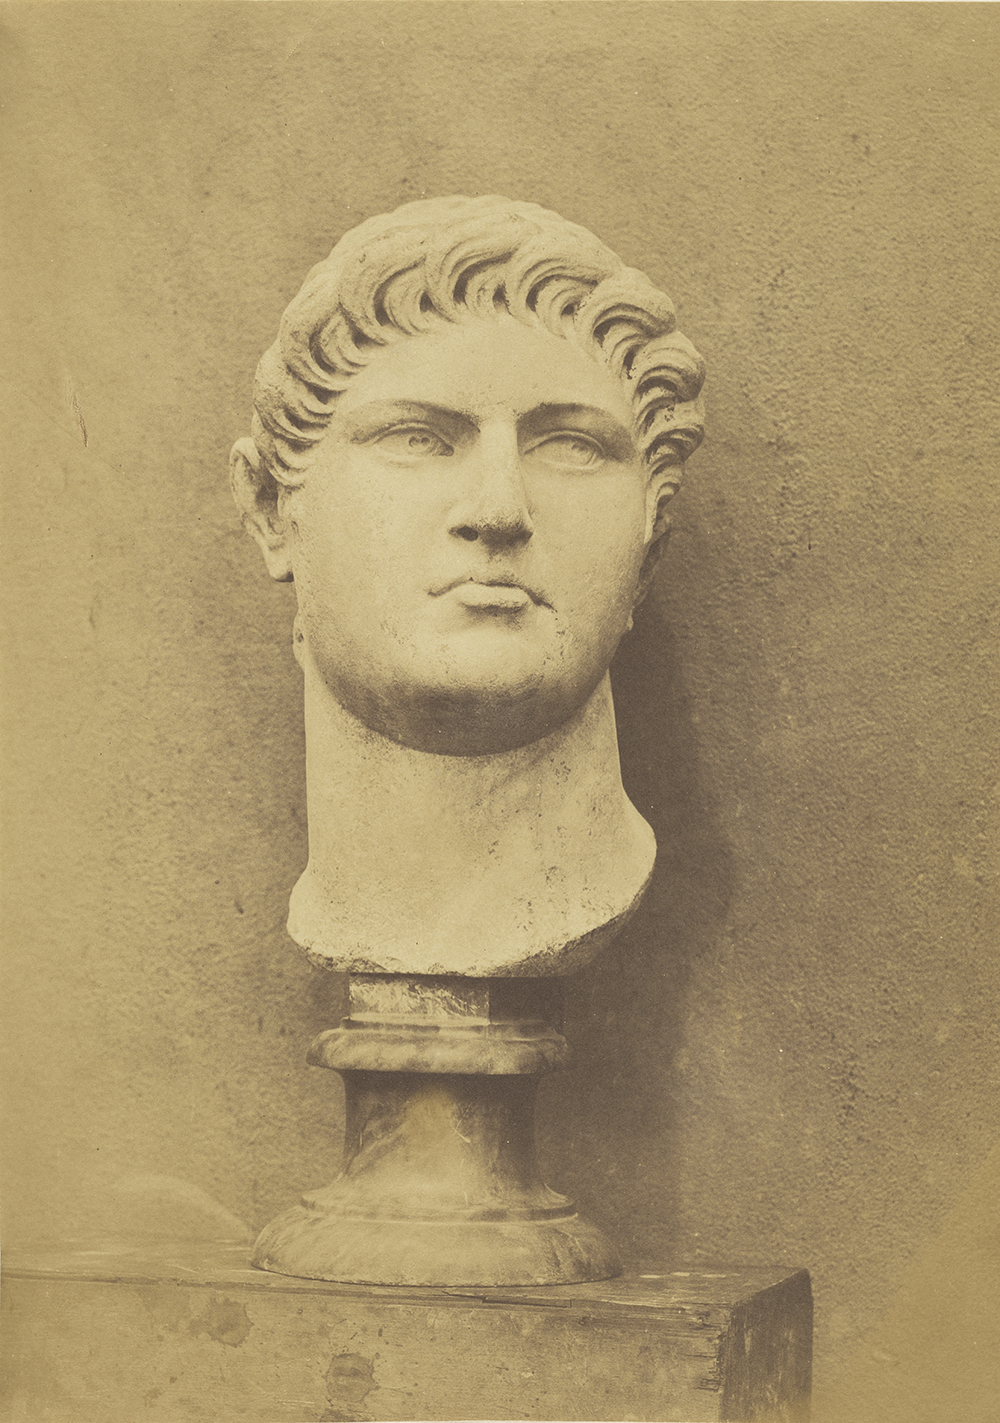 Bust of Nero, by Roger Fenton, c. 1854. The J. Paul Getty Museum, Los Angeles. Digital image courtesy the Getty's Open Content Program.